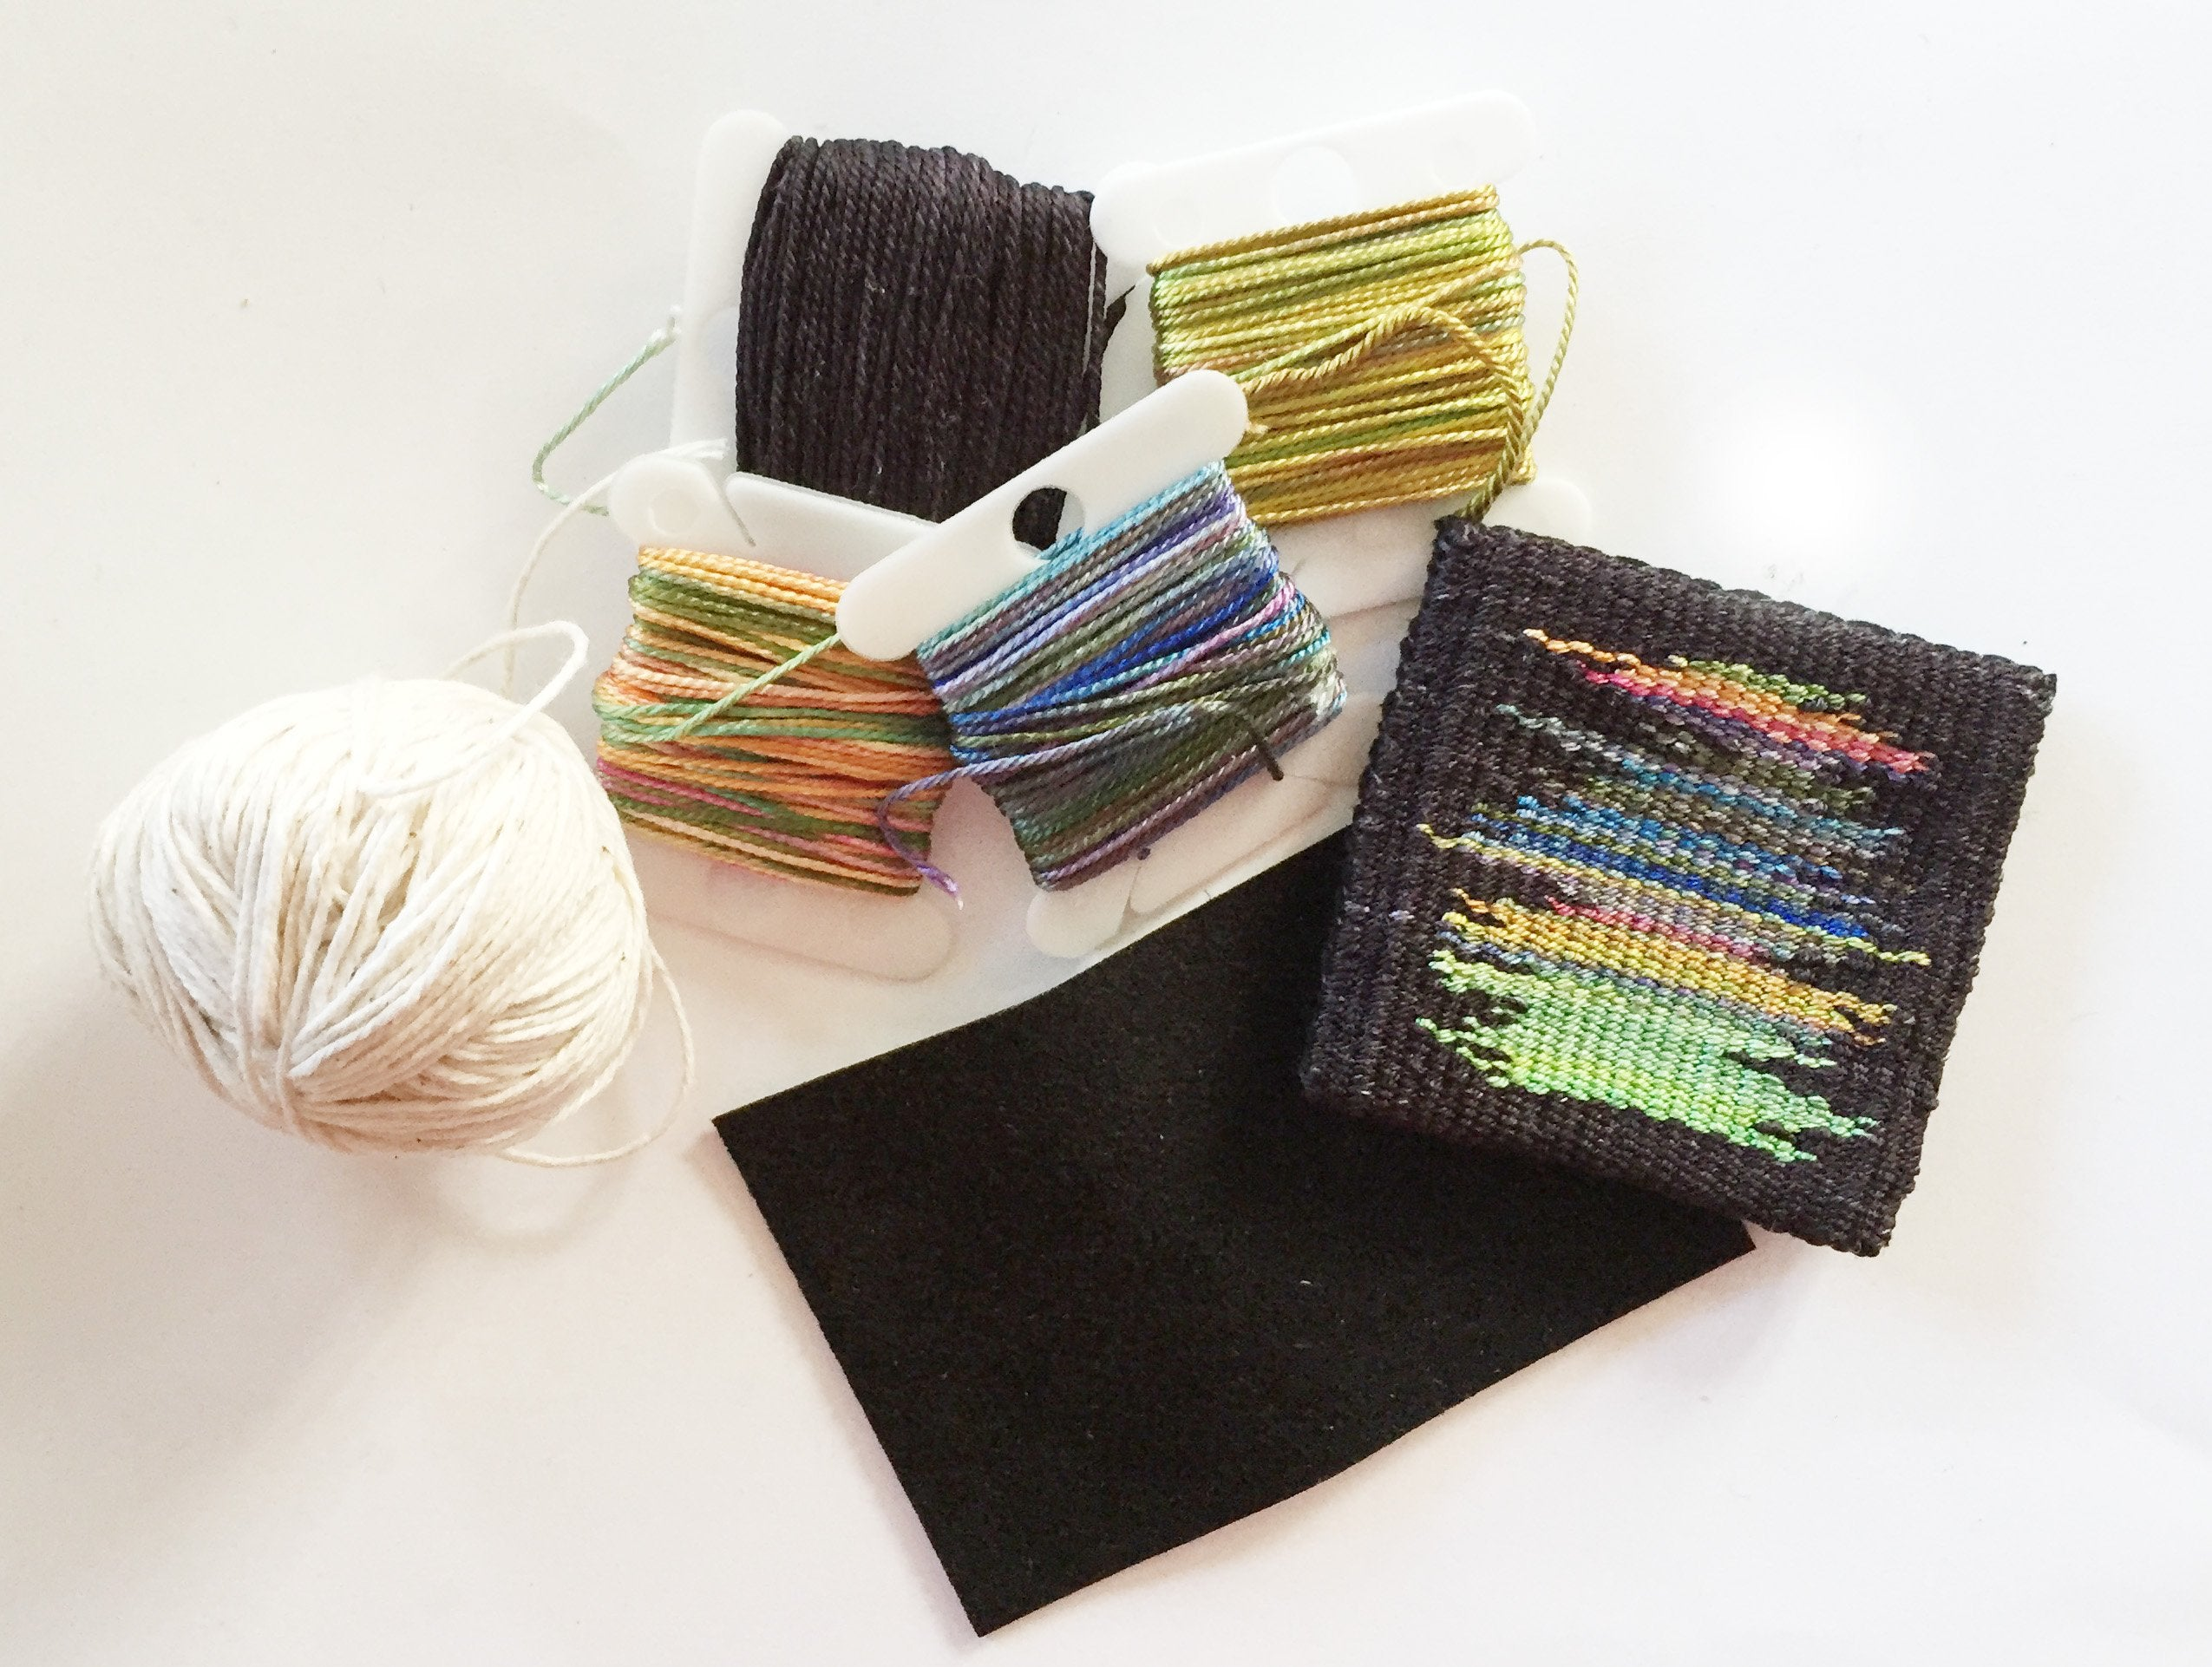 Mini Tapestry Wall-Hanging Kits